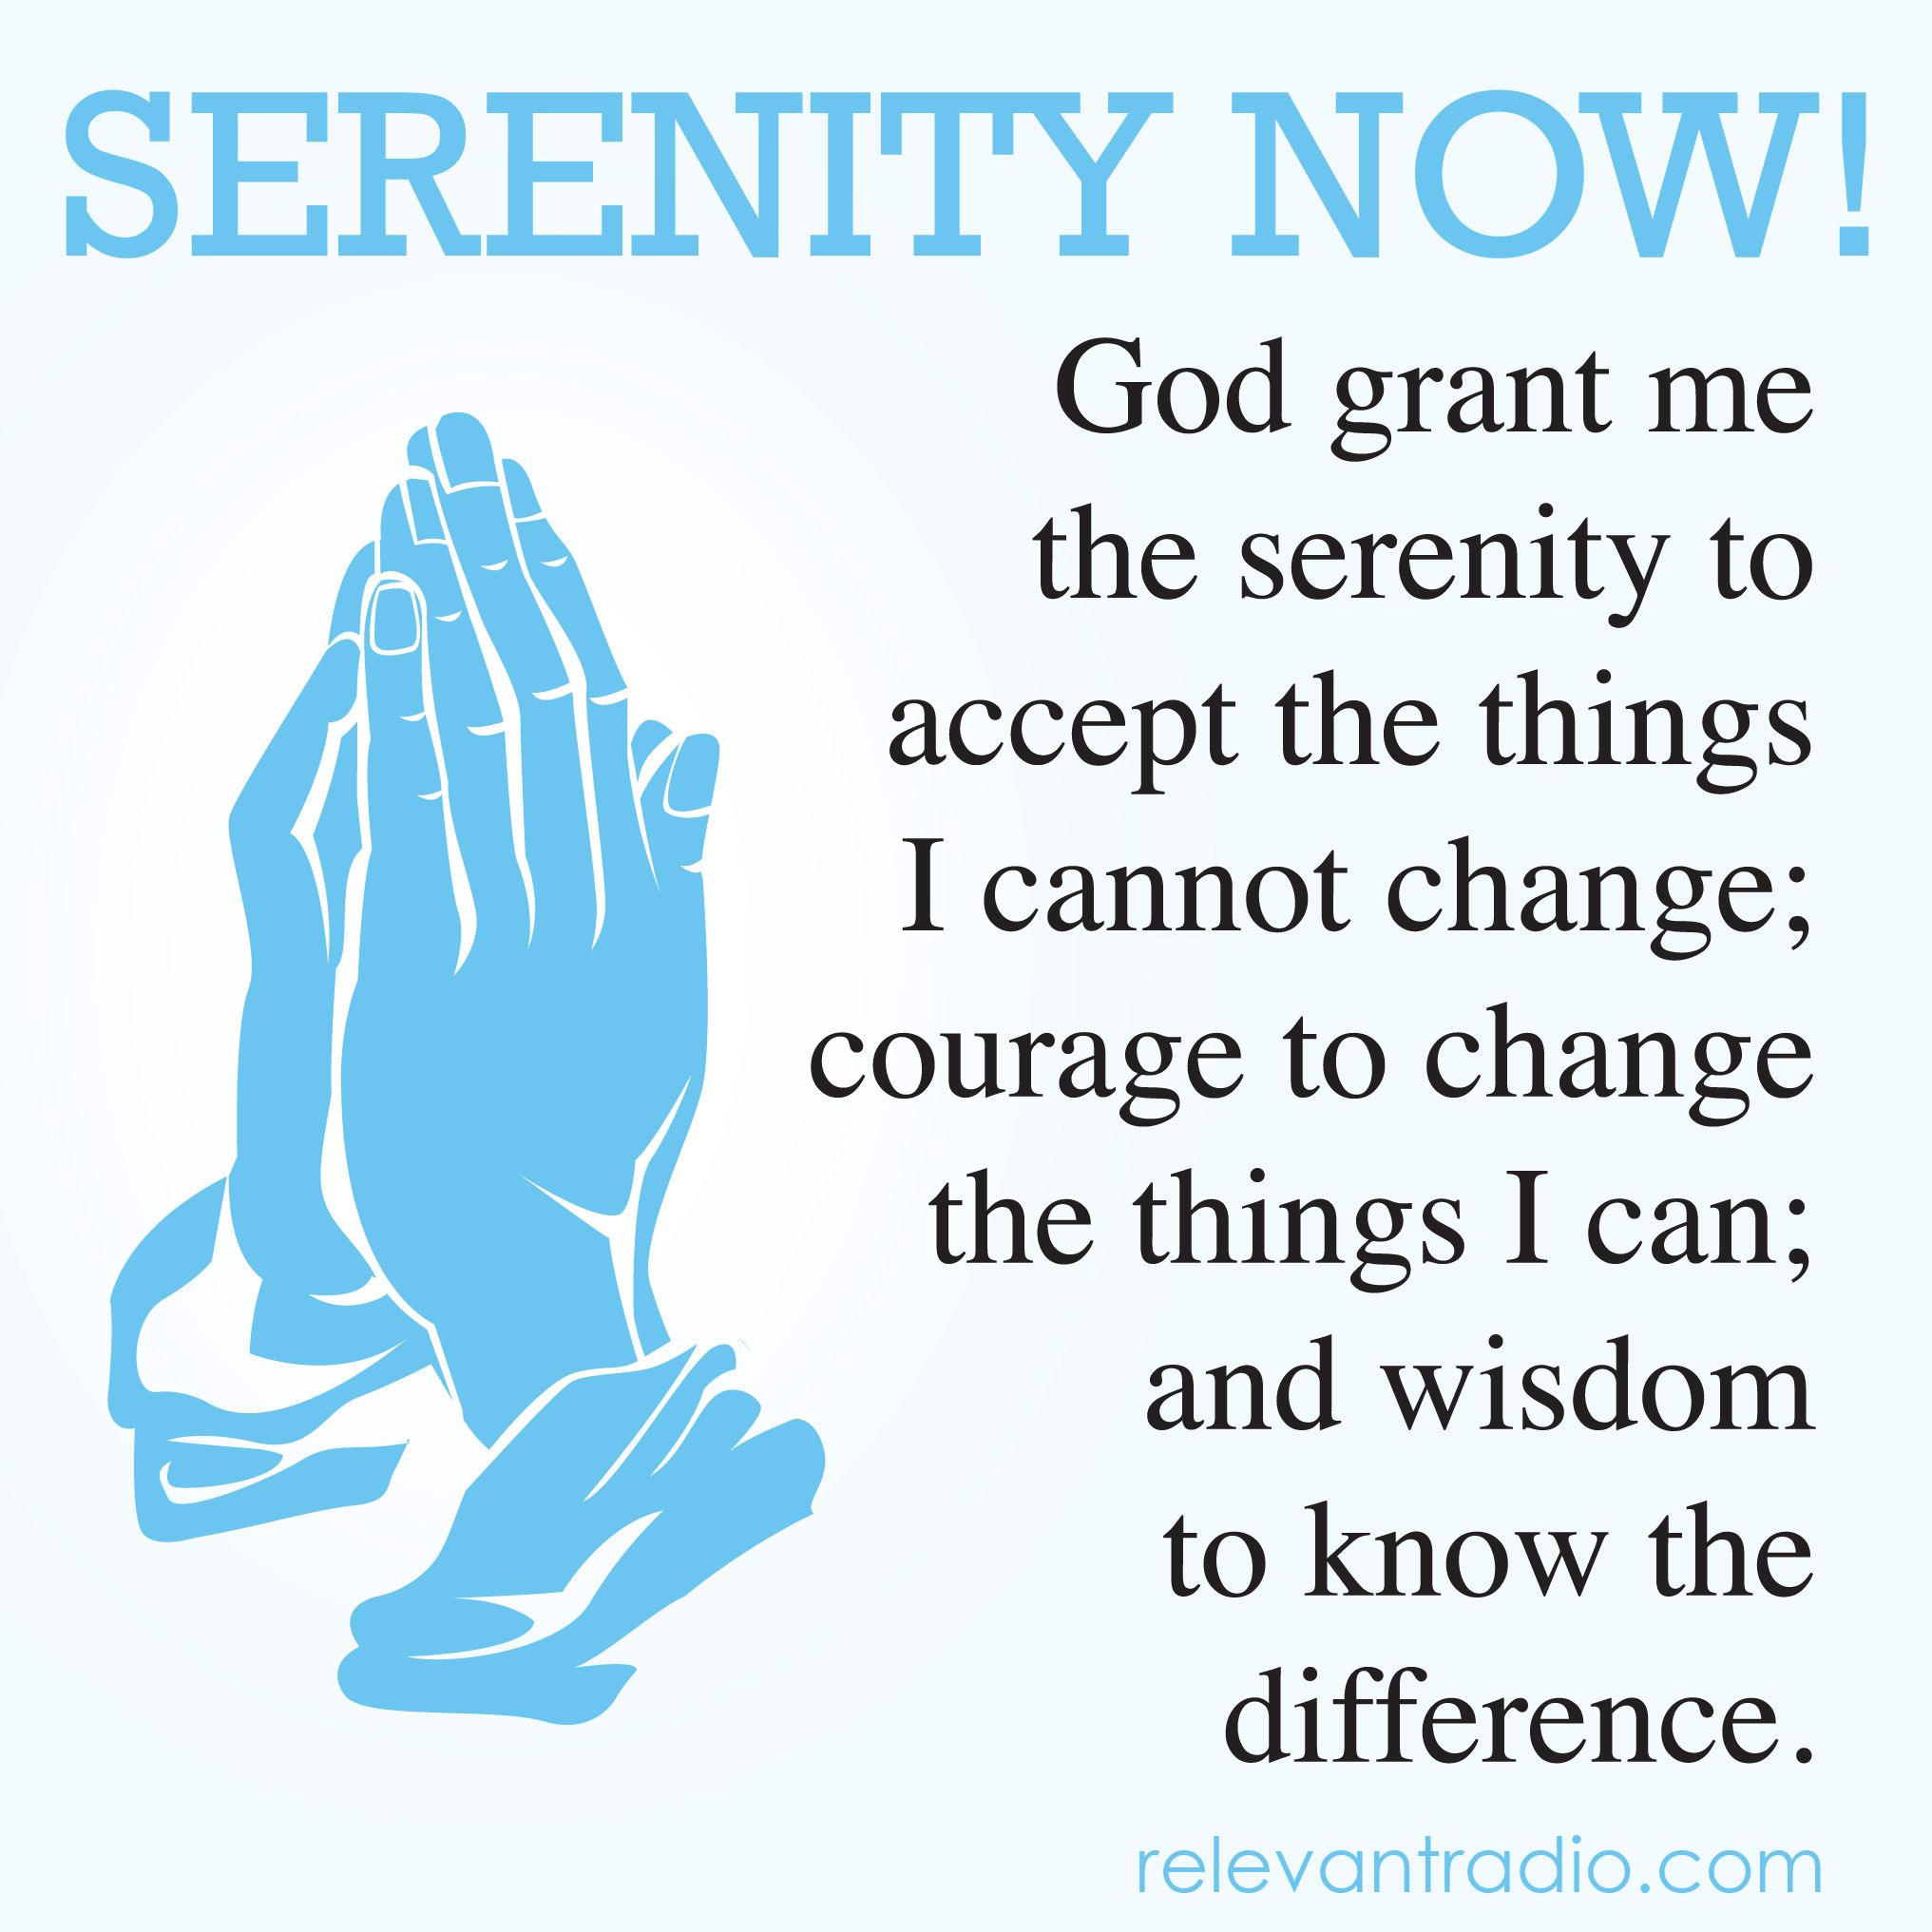 A great little prayer that works much better than just